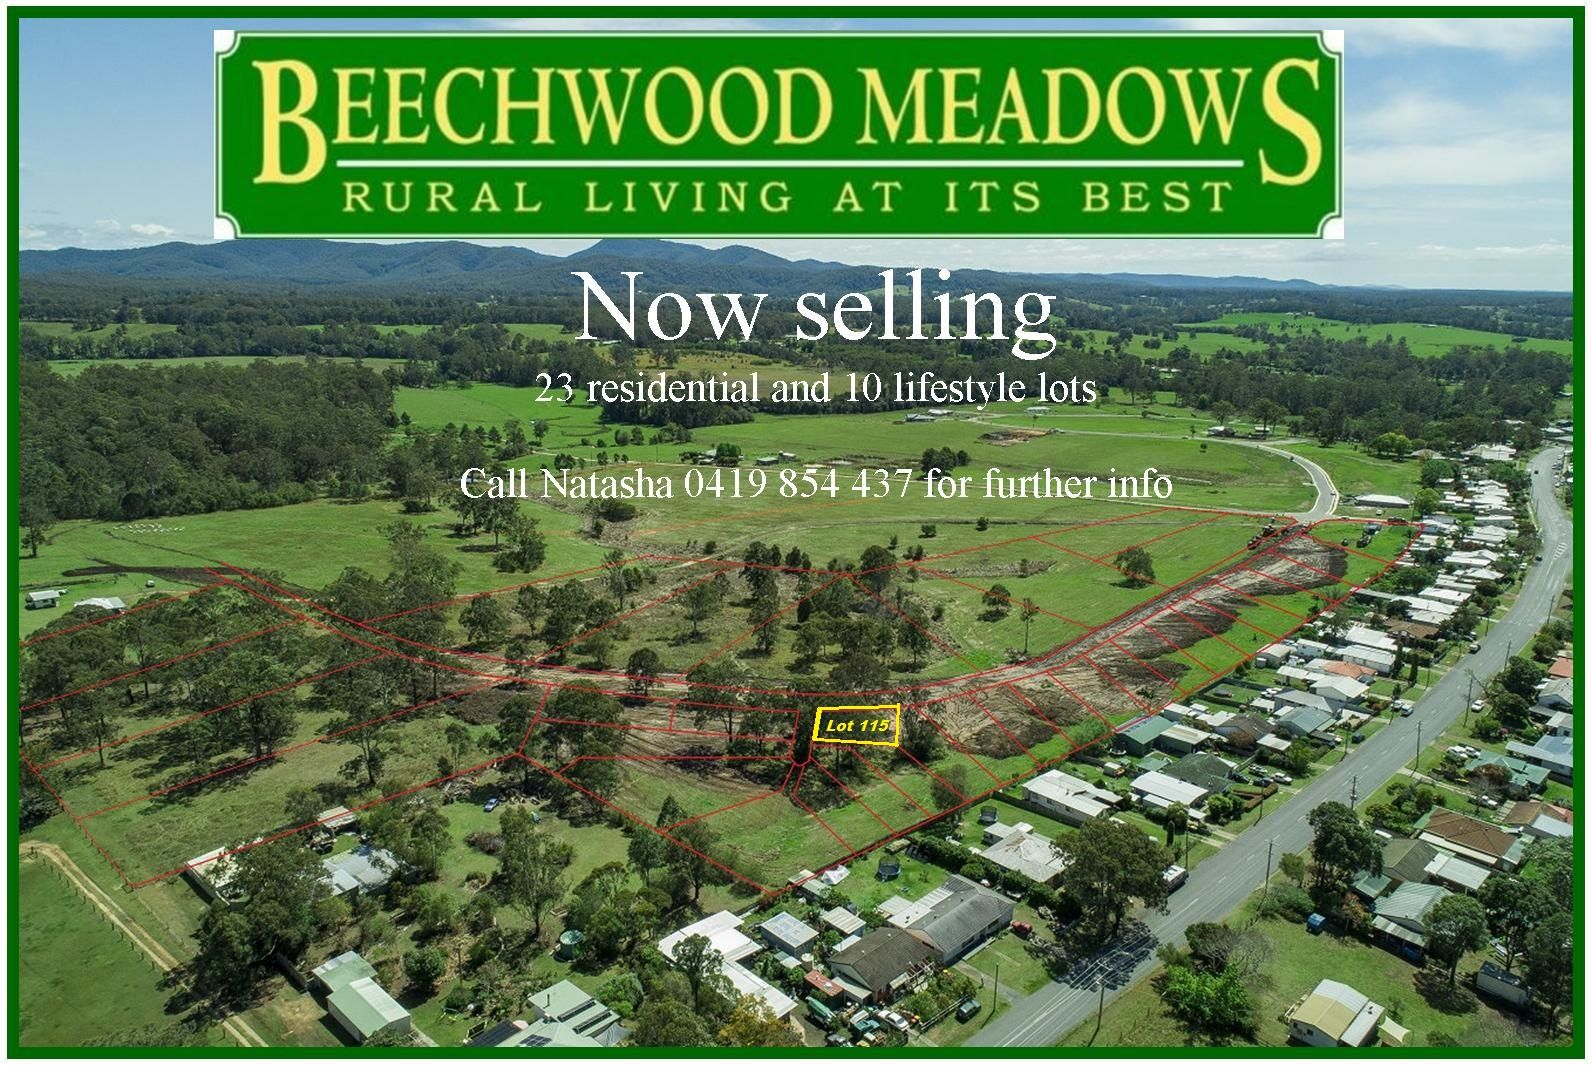 Lot 115 Beechwood Meadows Stage 2